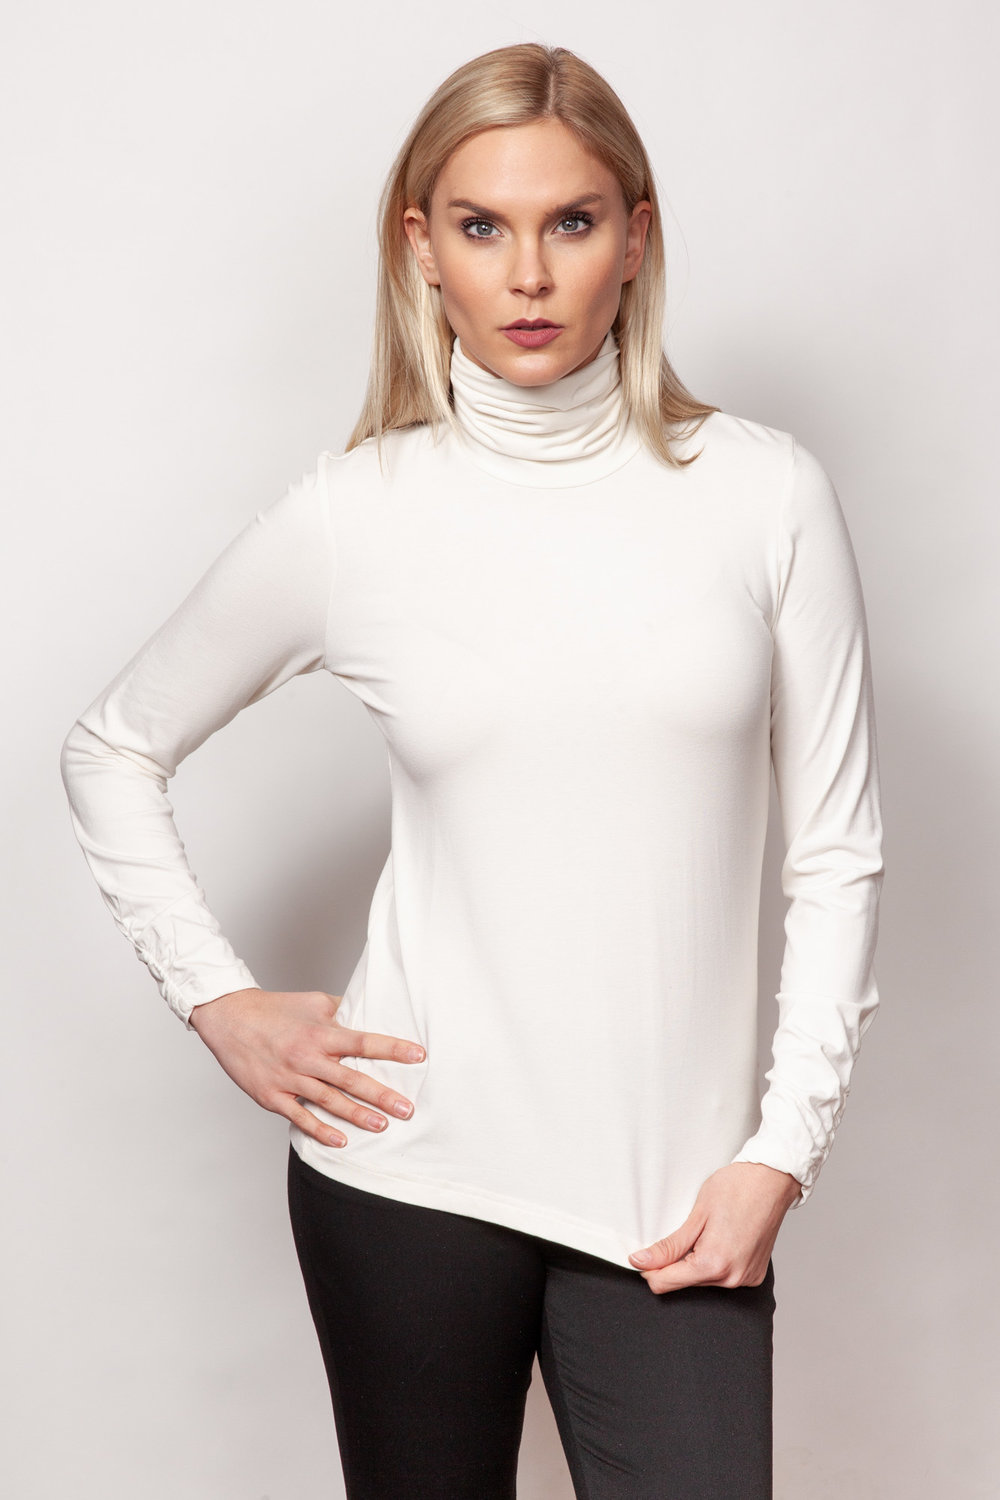 Copy of Style # 33405-19, p 10 <br/>Cashmerette Jersey <br/>Colors: Ivory + 3 others